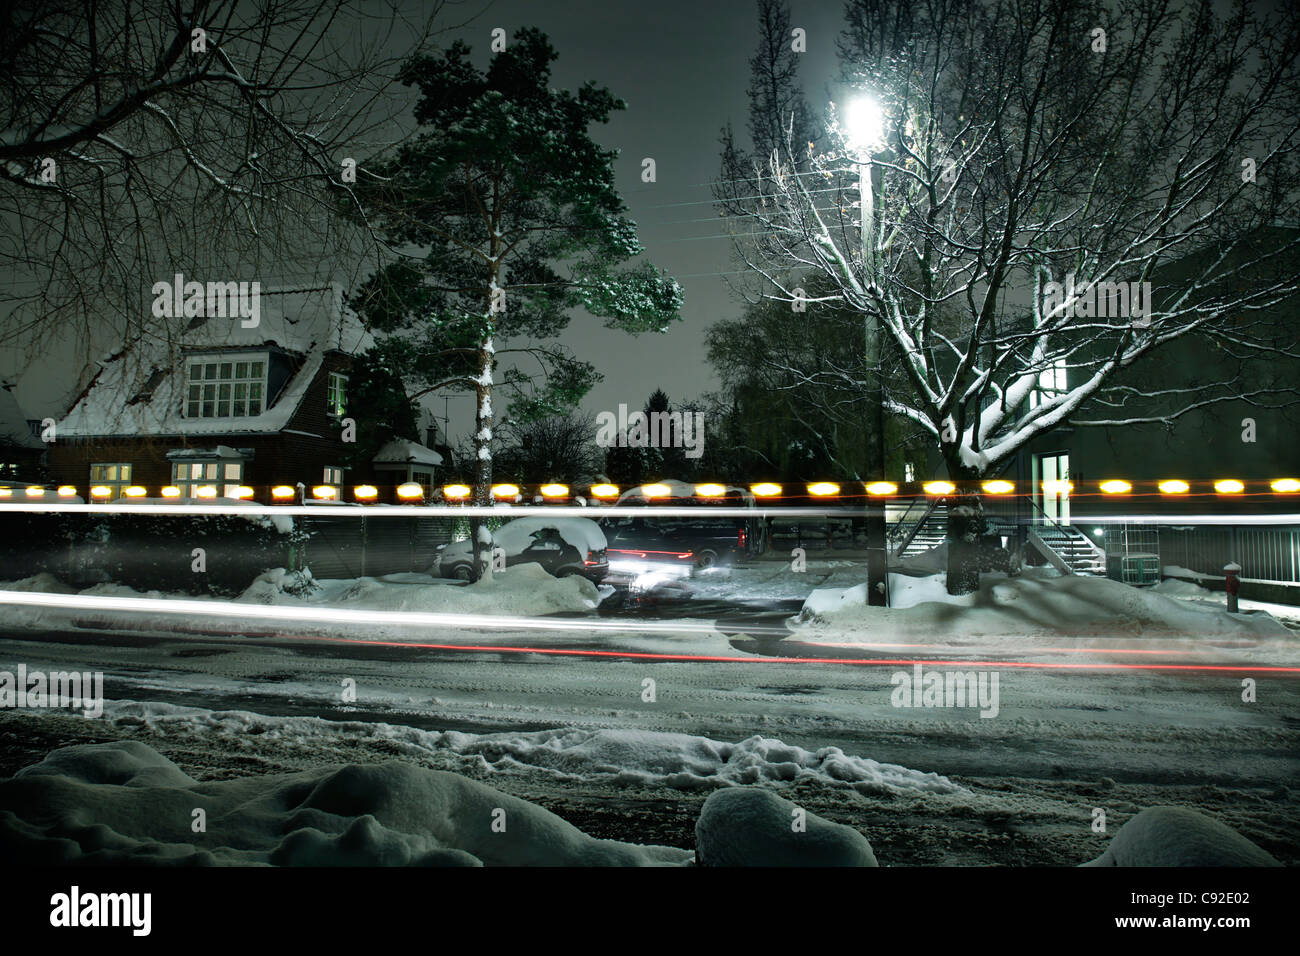 Time lapse view of snow covered street - Stock Image